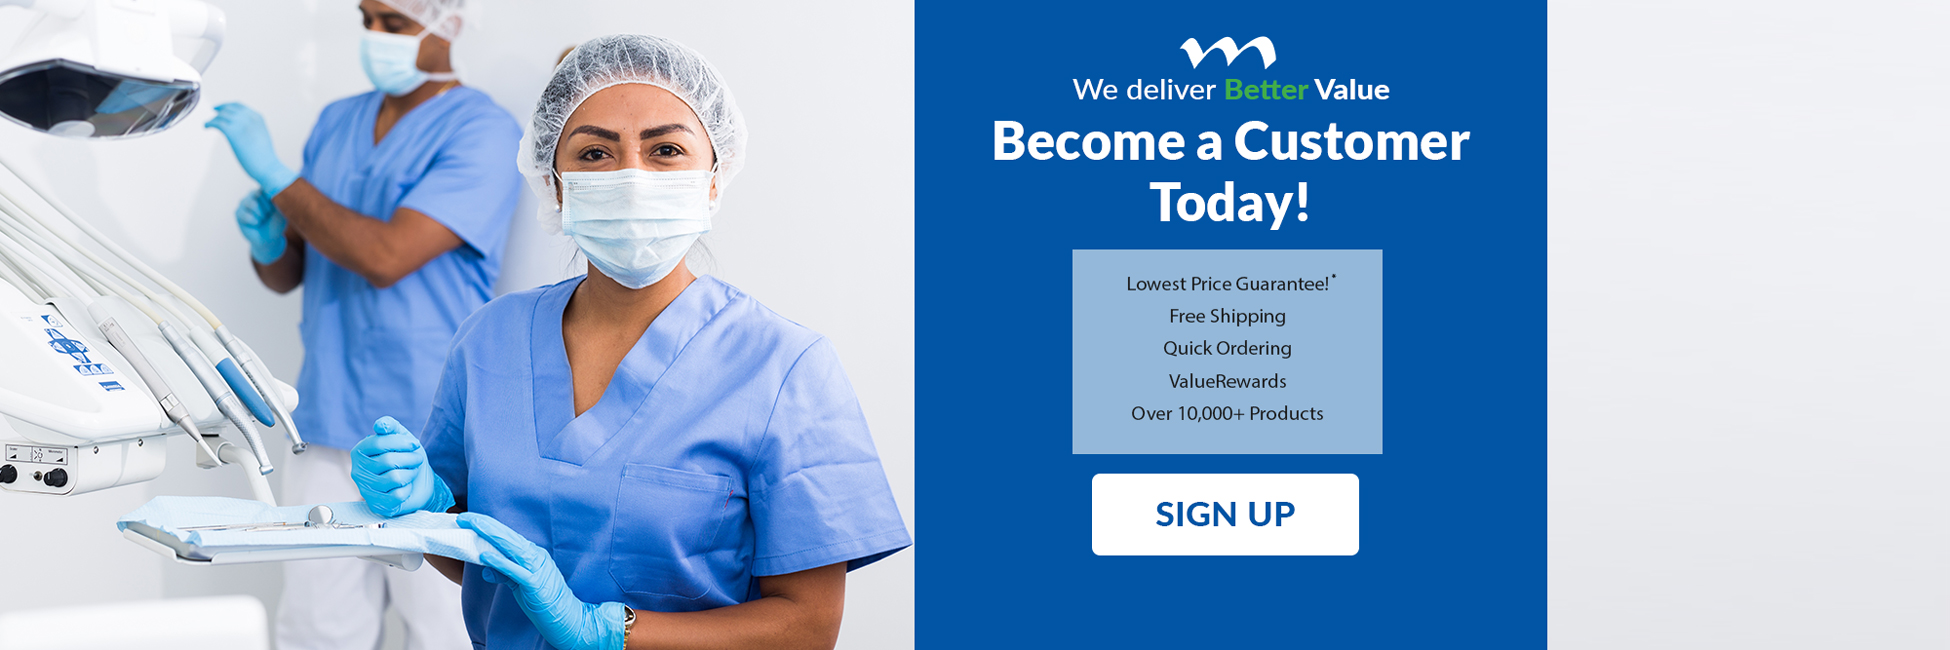 sign up banner